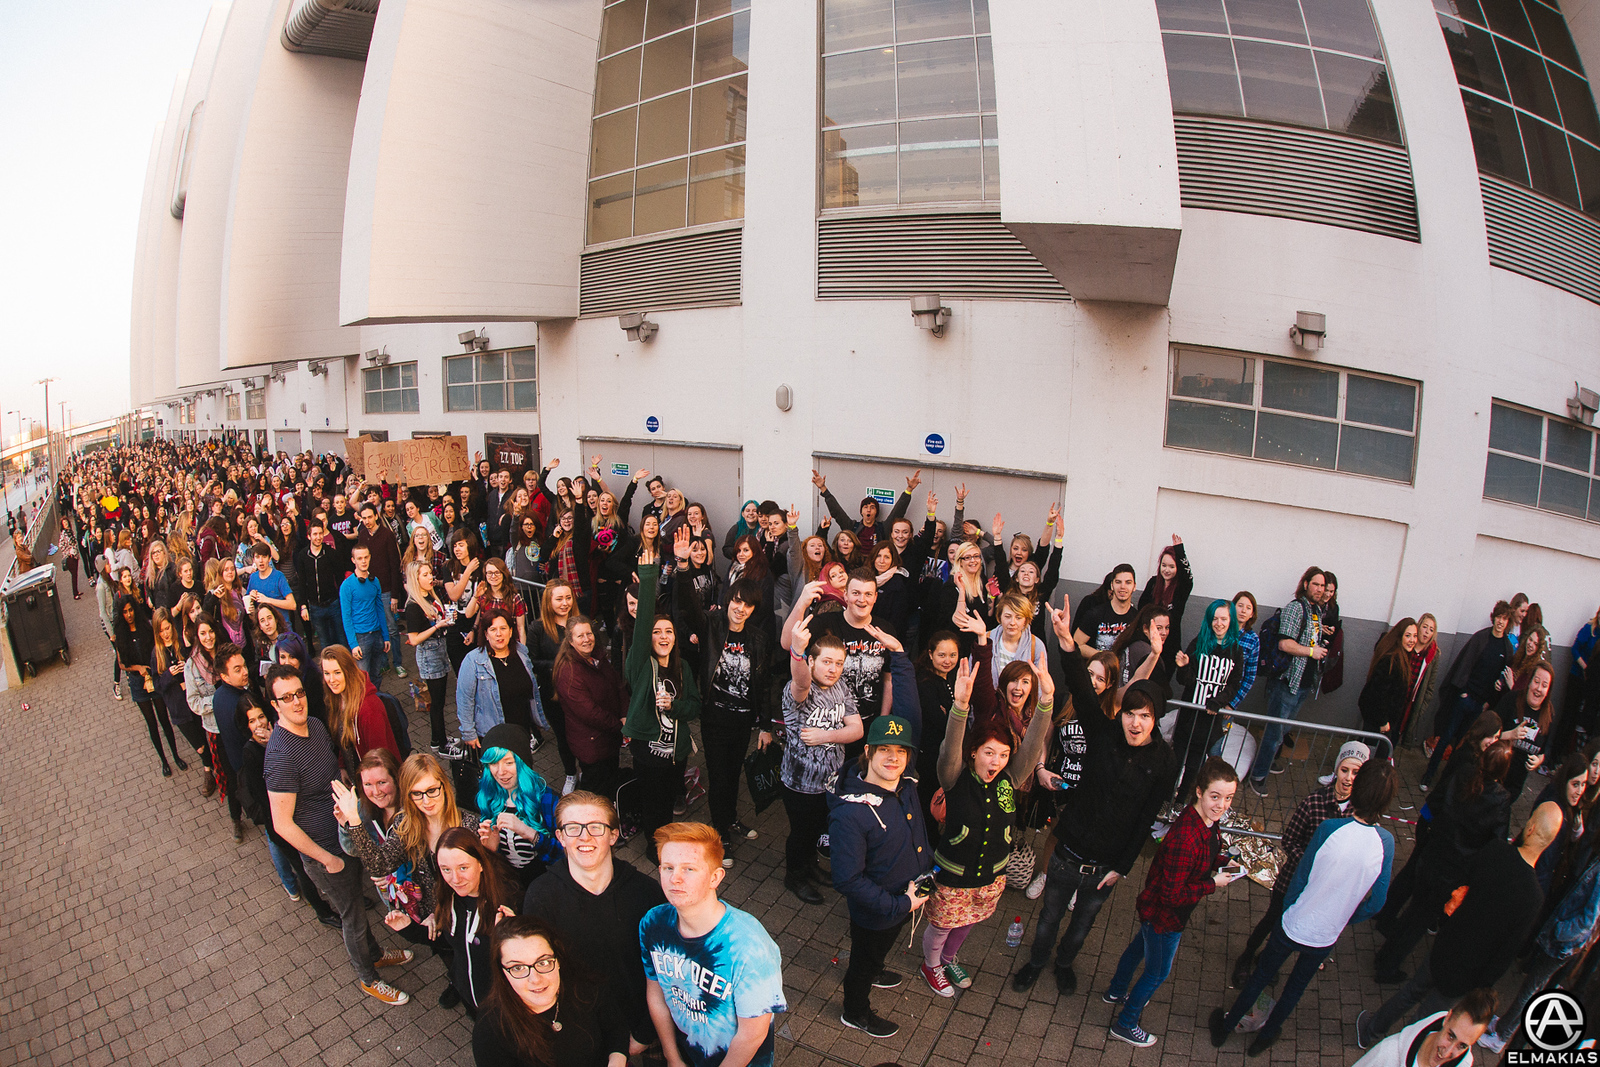 Kids in line at Wembley arena for All Time Low